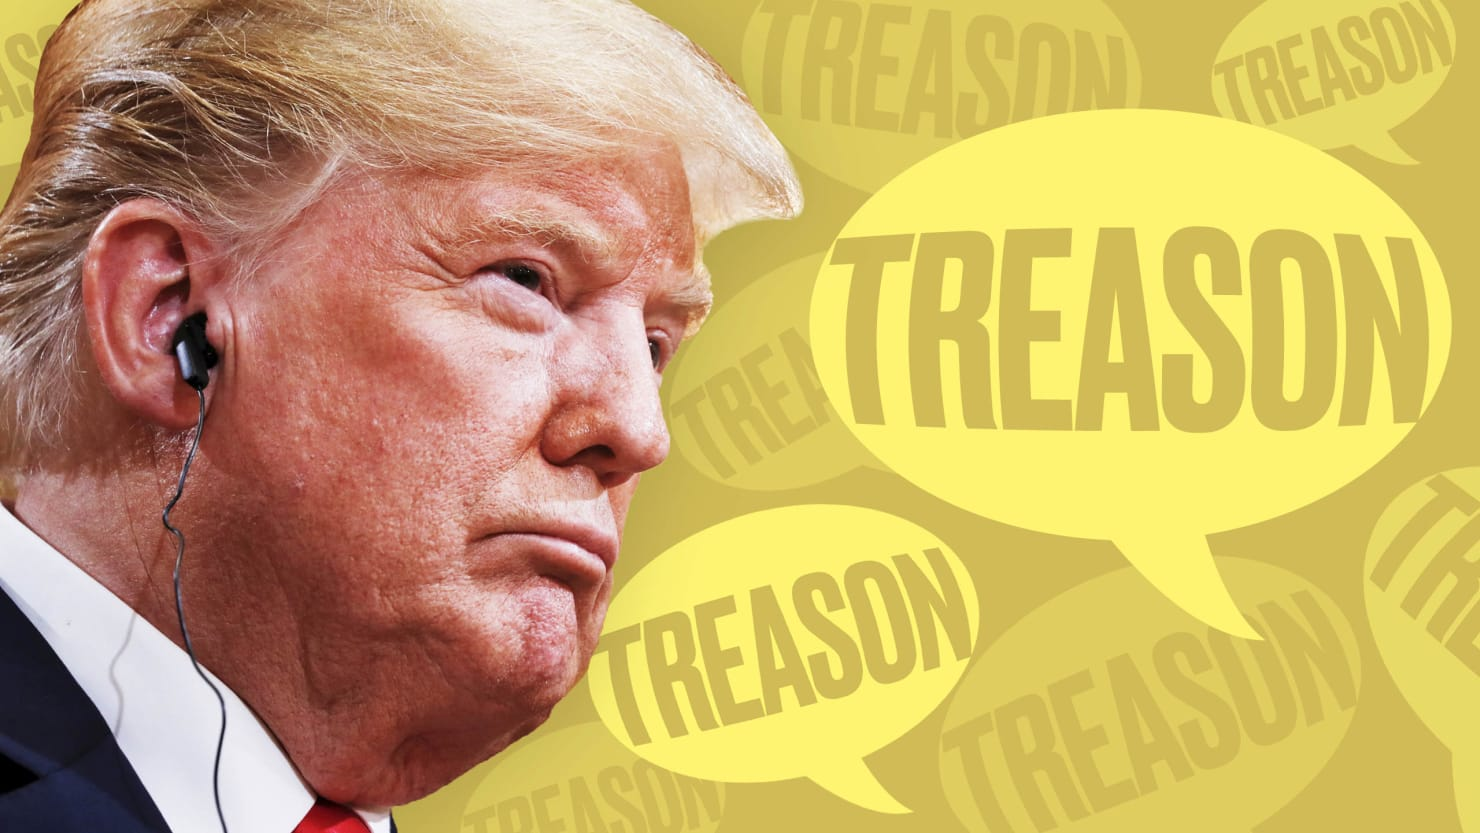 Why you should never take it back after treason